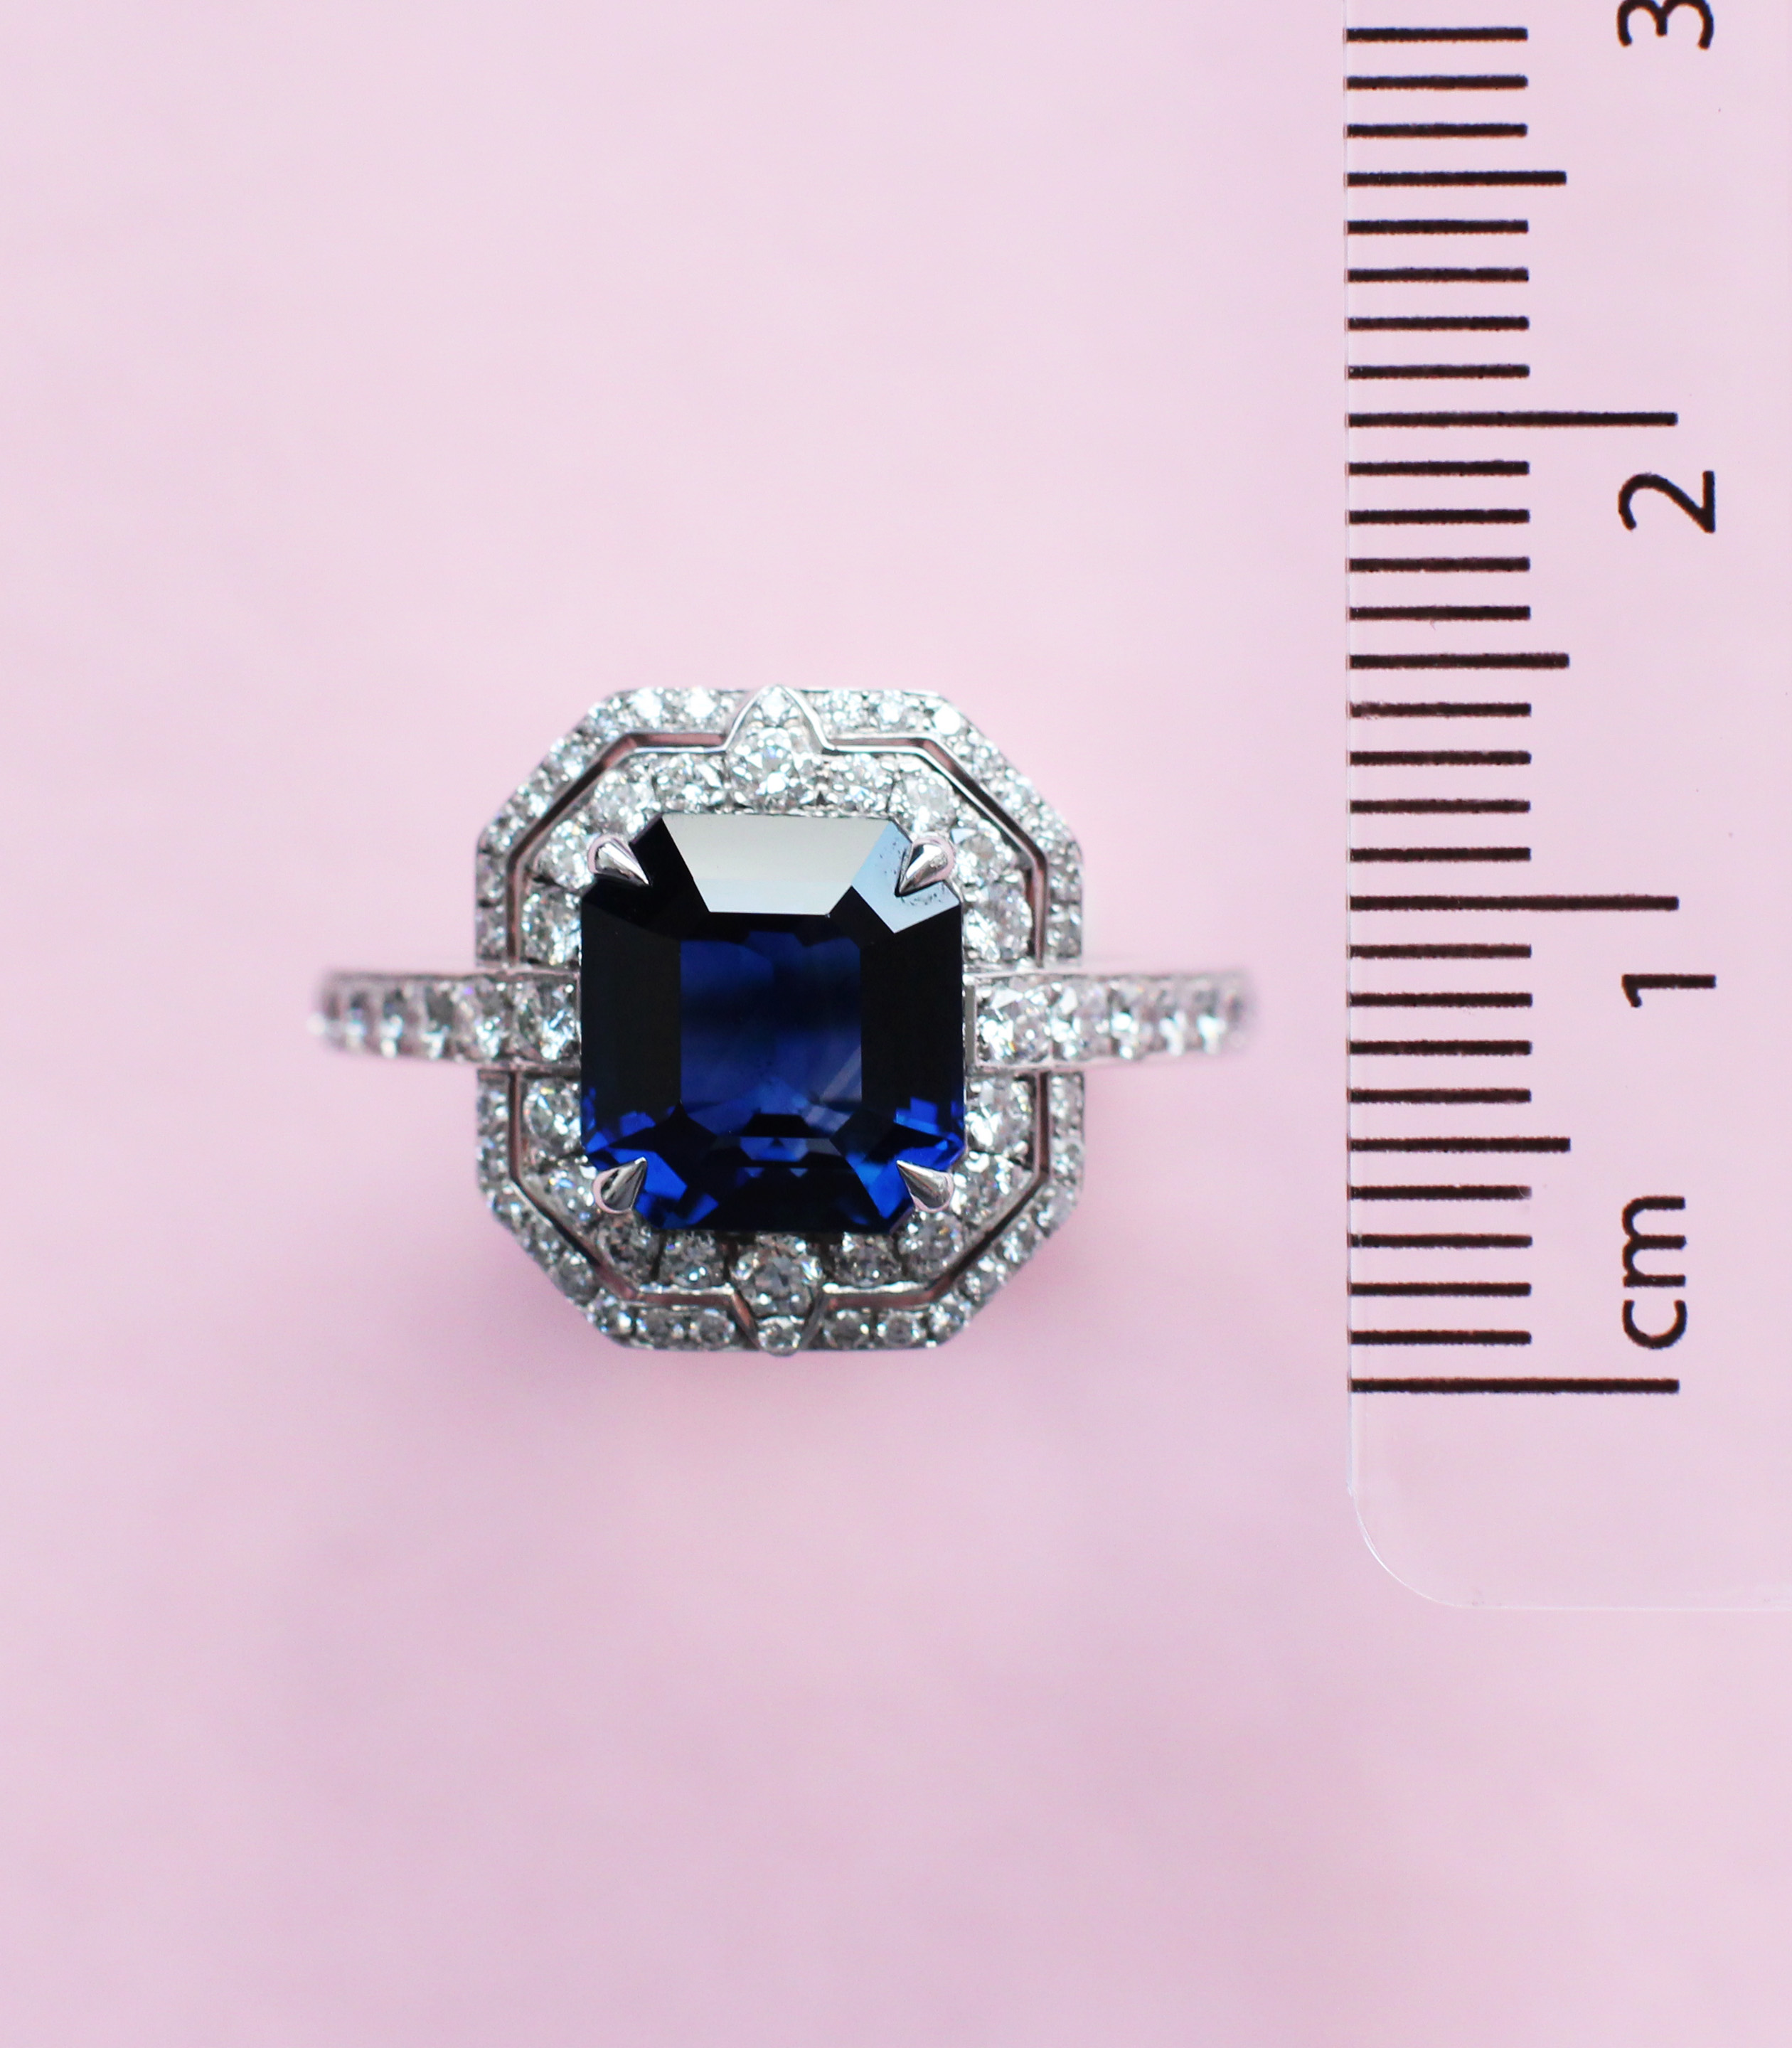 deco sapphire and diamond ring